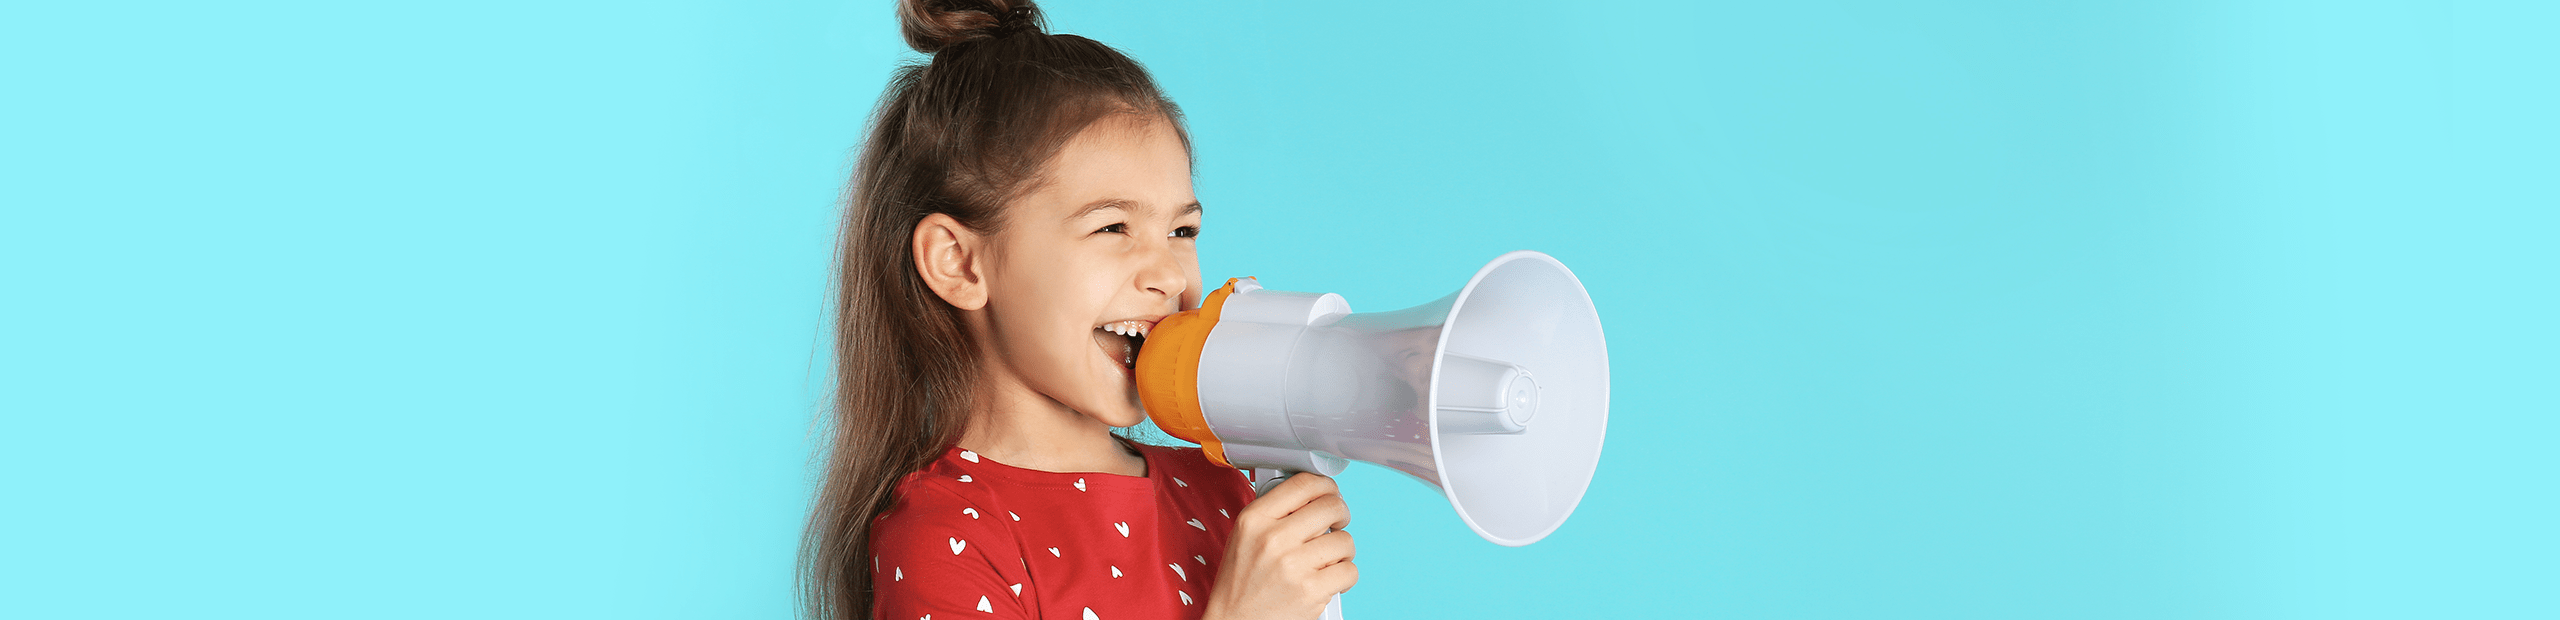 young girl laughing holding a megaphone